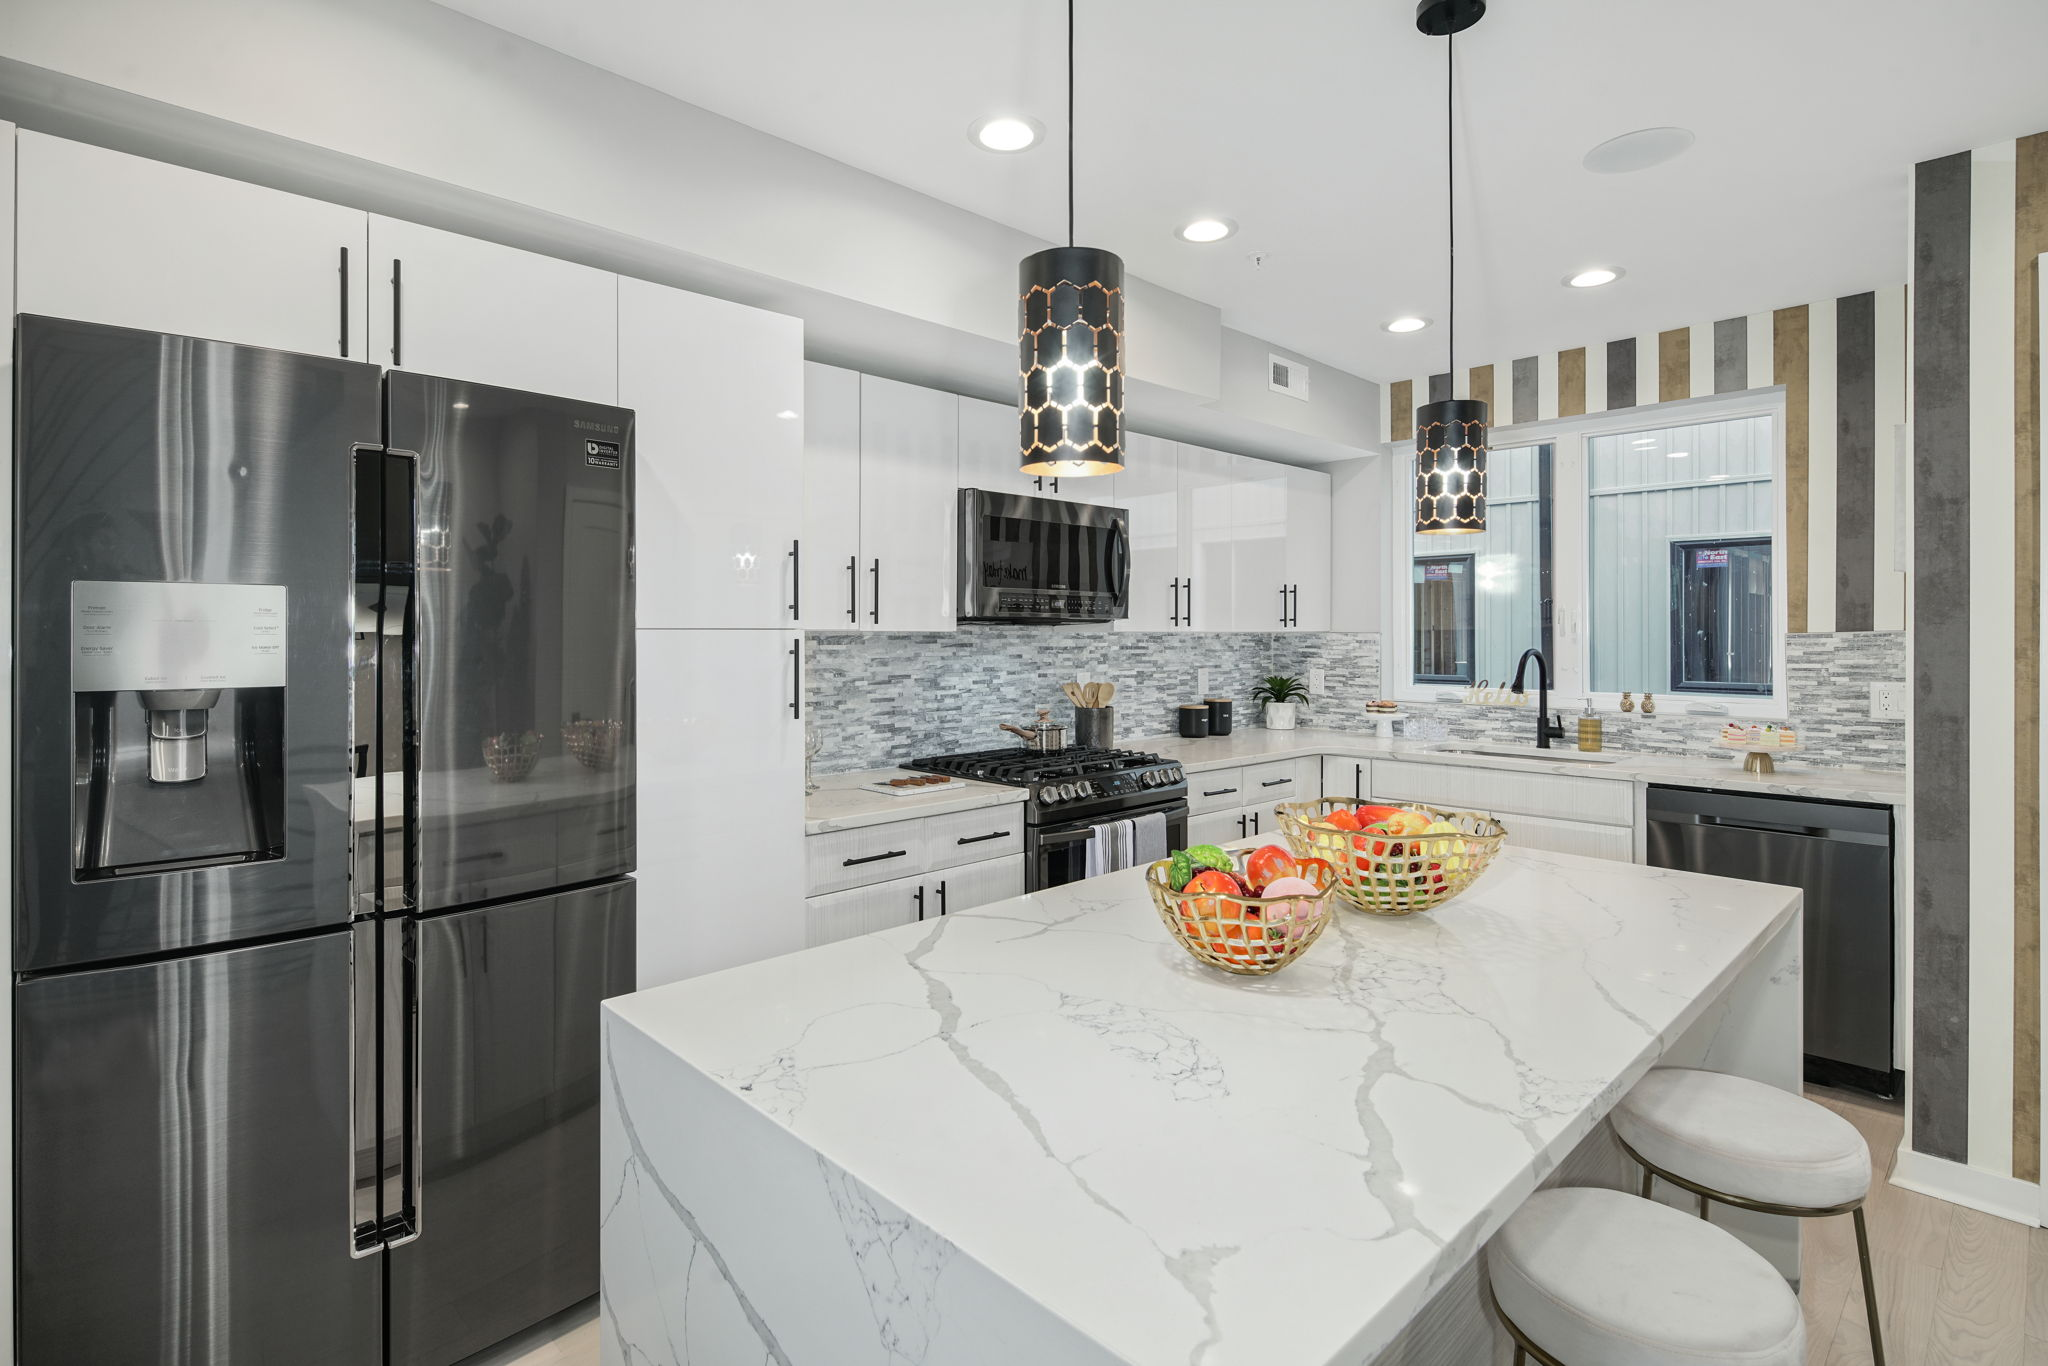 Ideal Interior Design Solutions for Real Estate in Philadelphia, PA